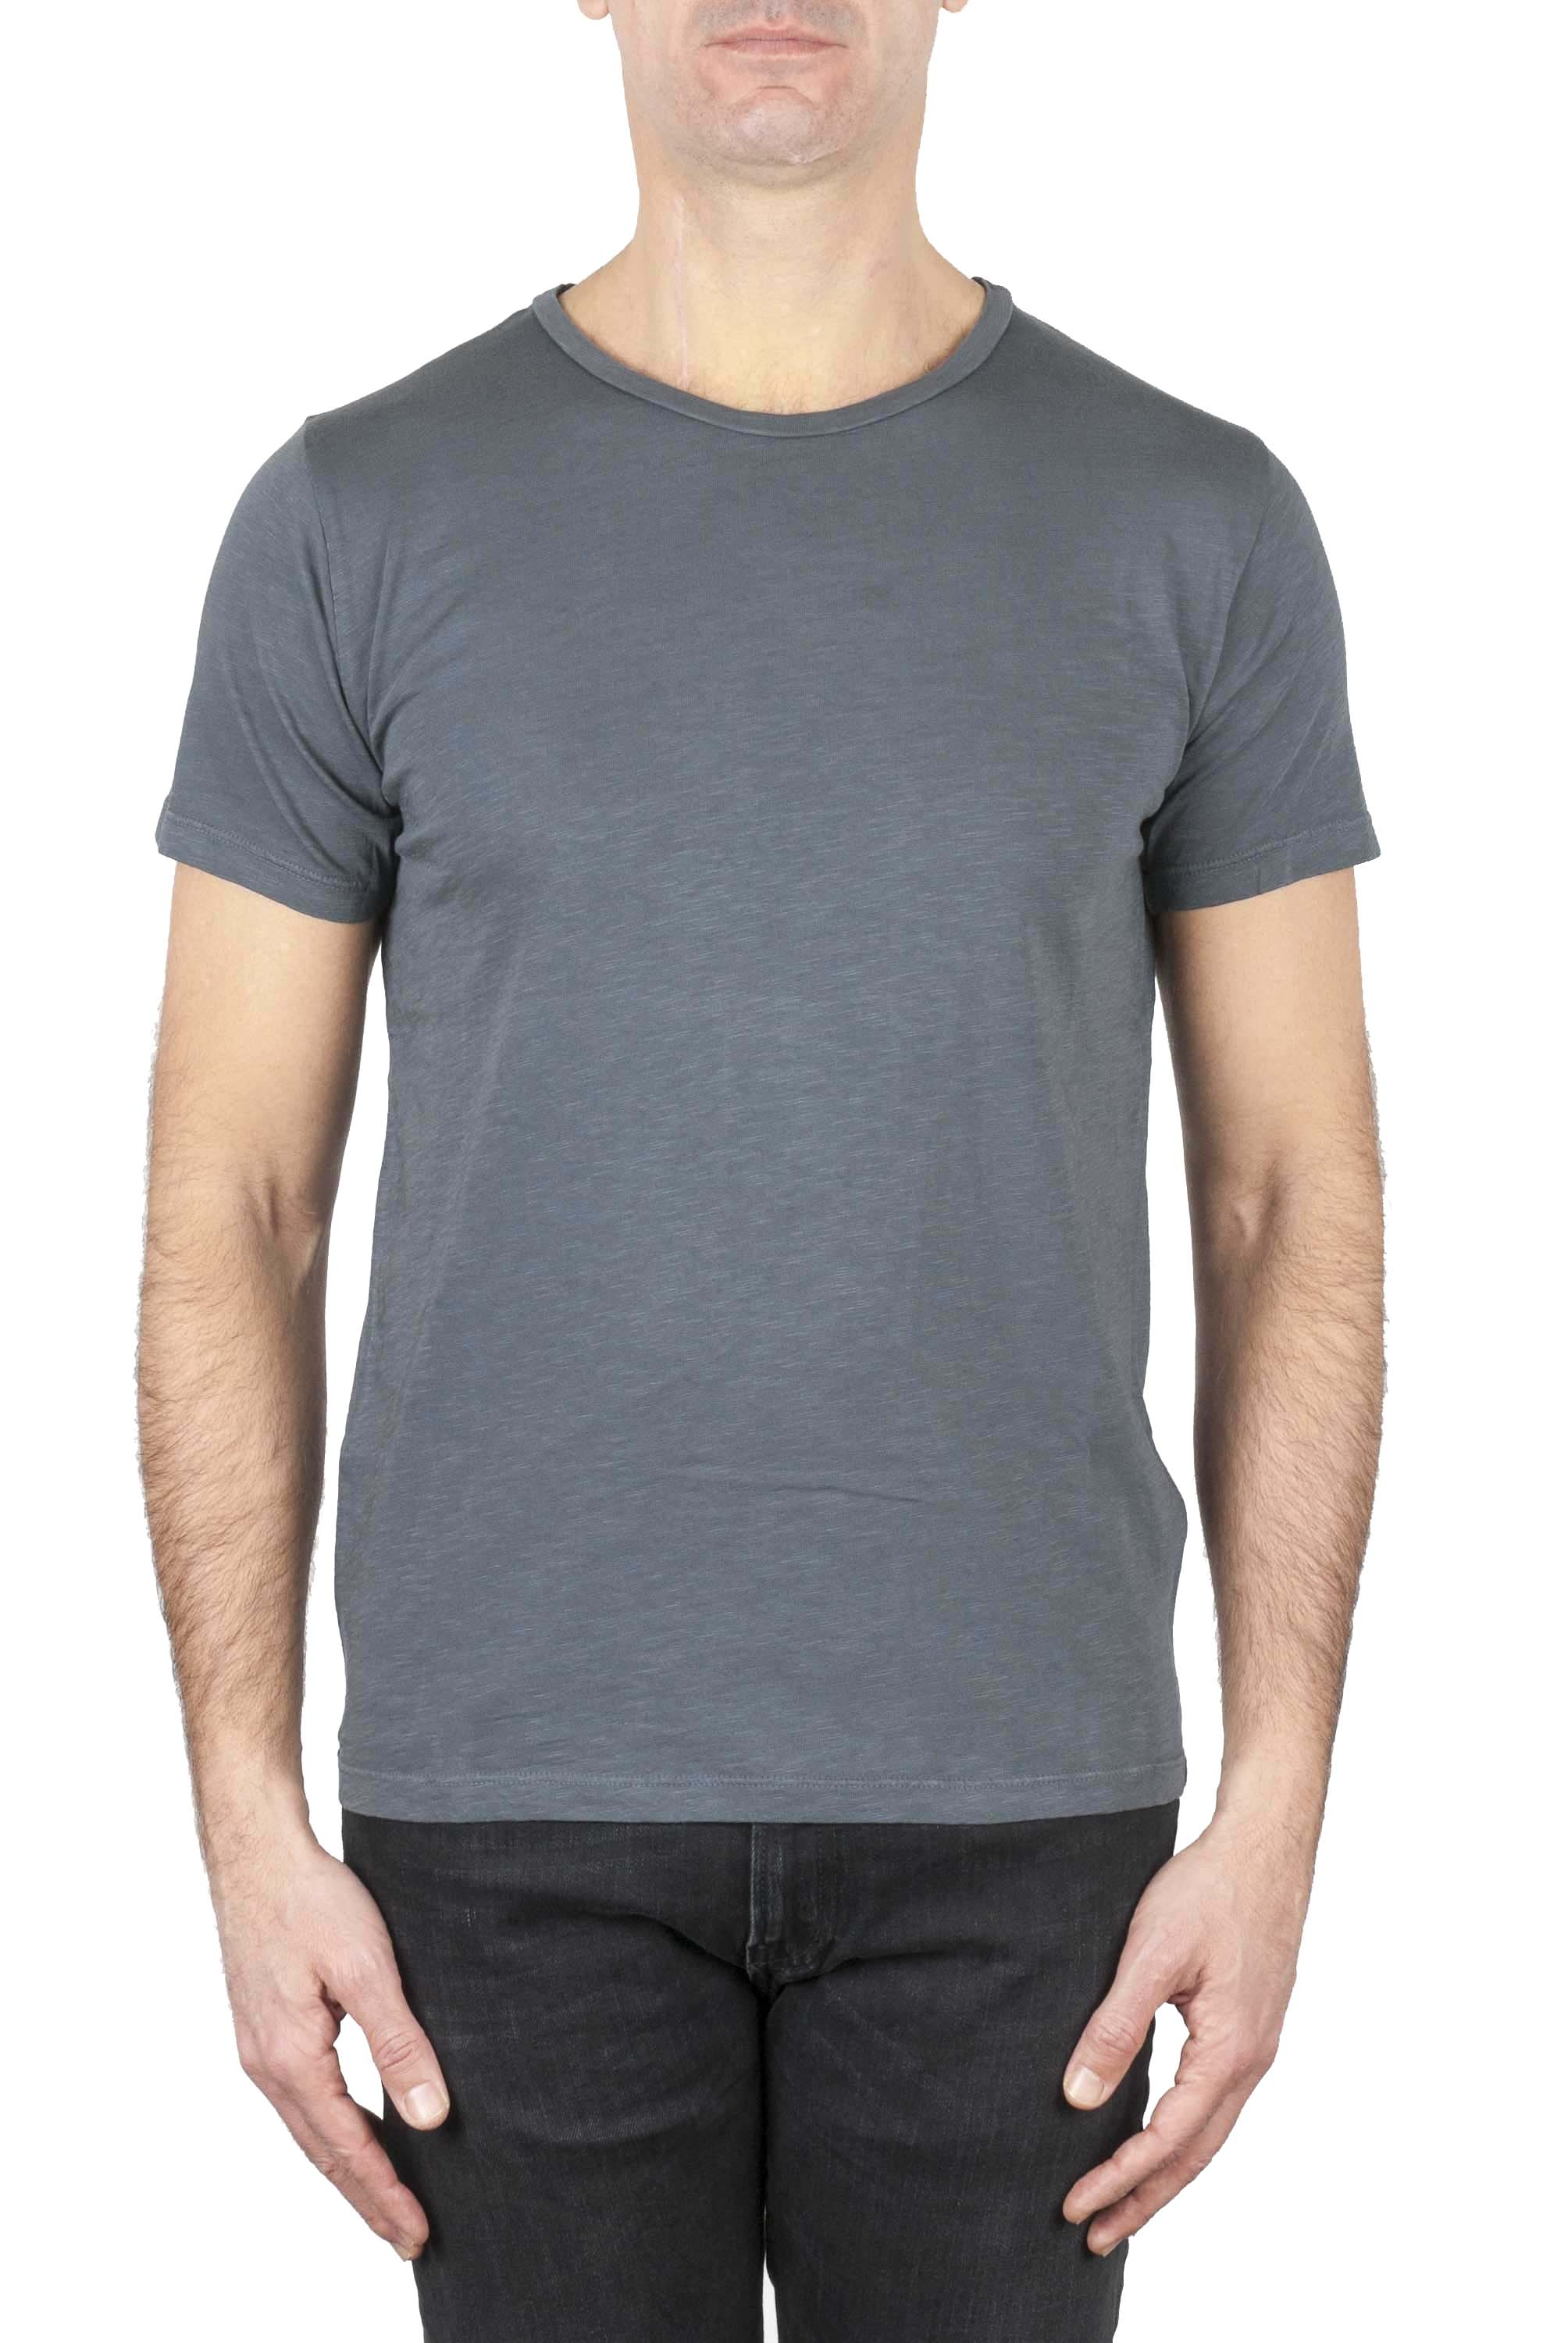 SBU 01641 Flamed cotton scoop neck t-shirt dark grey 01